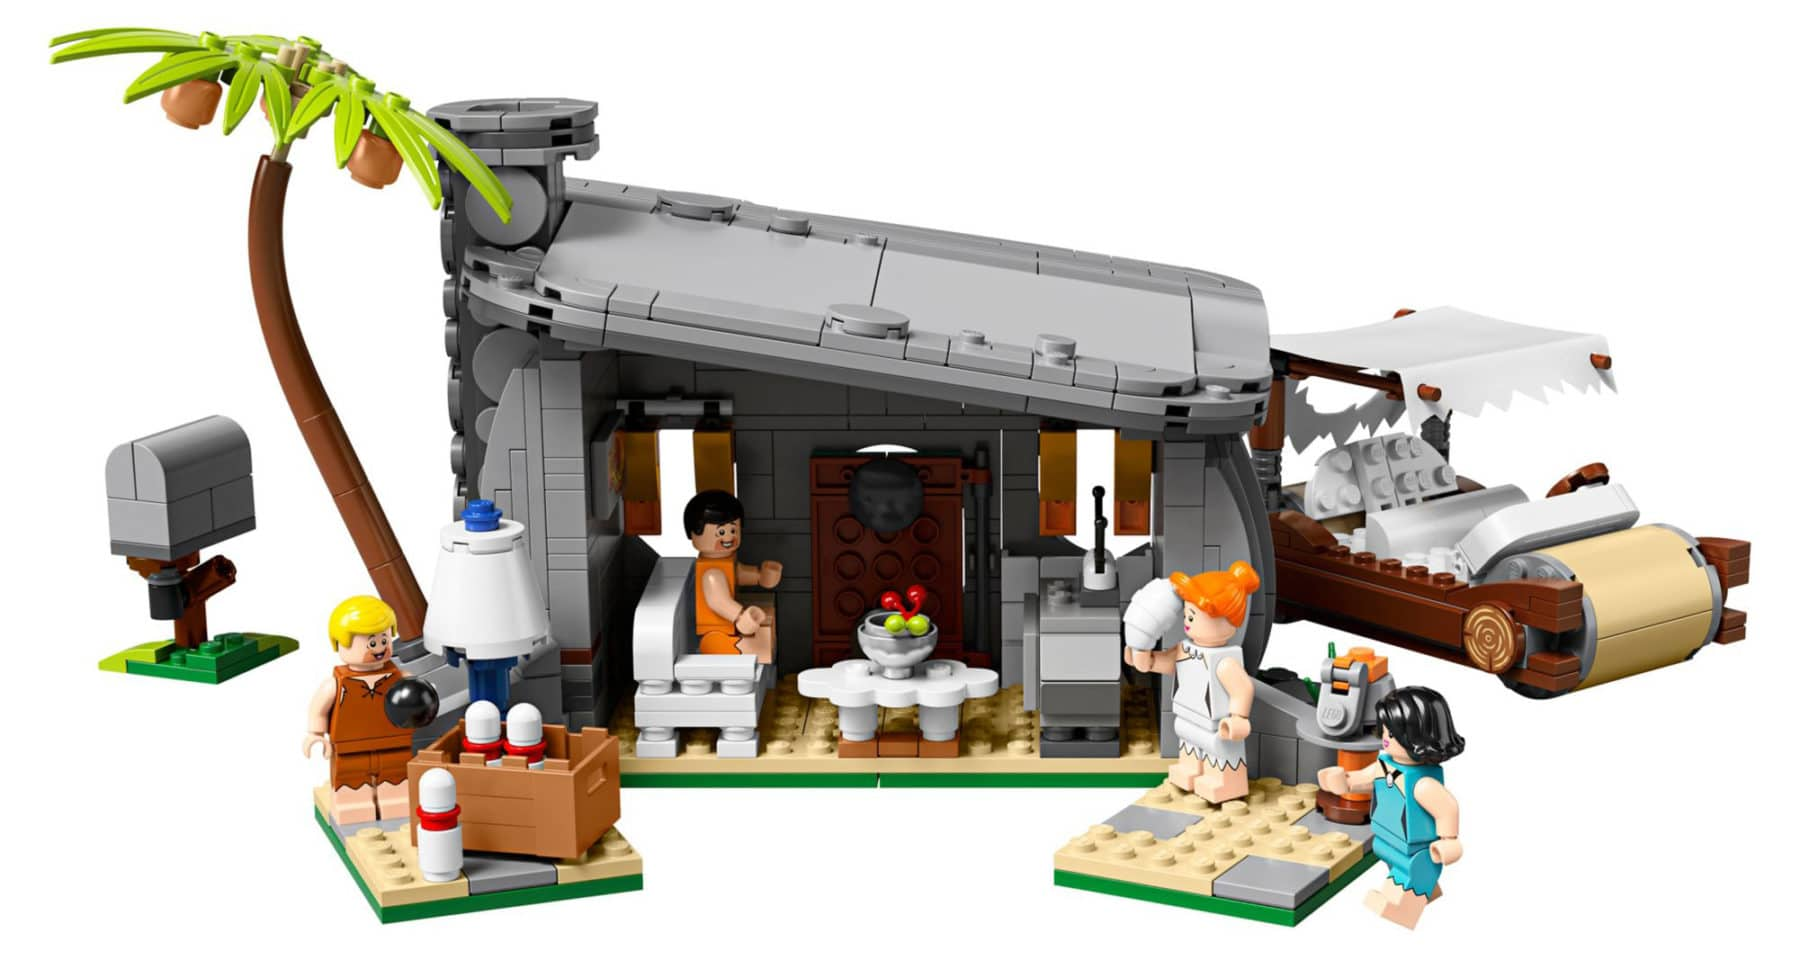 LEGO 21316 The Flintstones